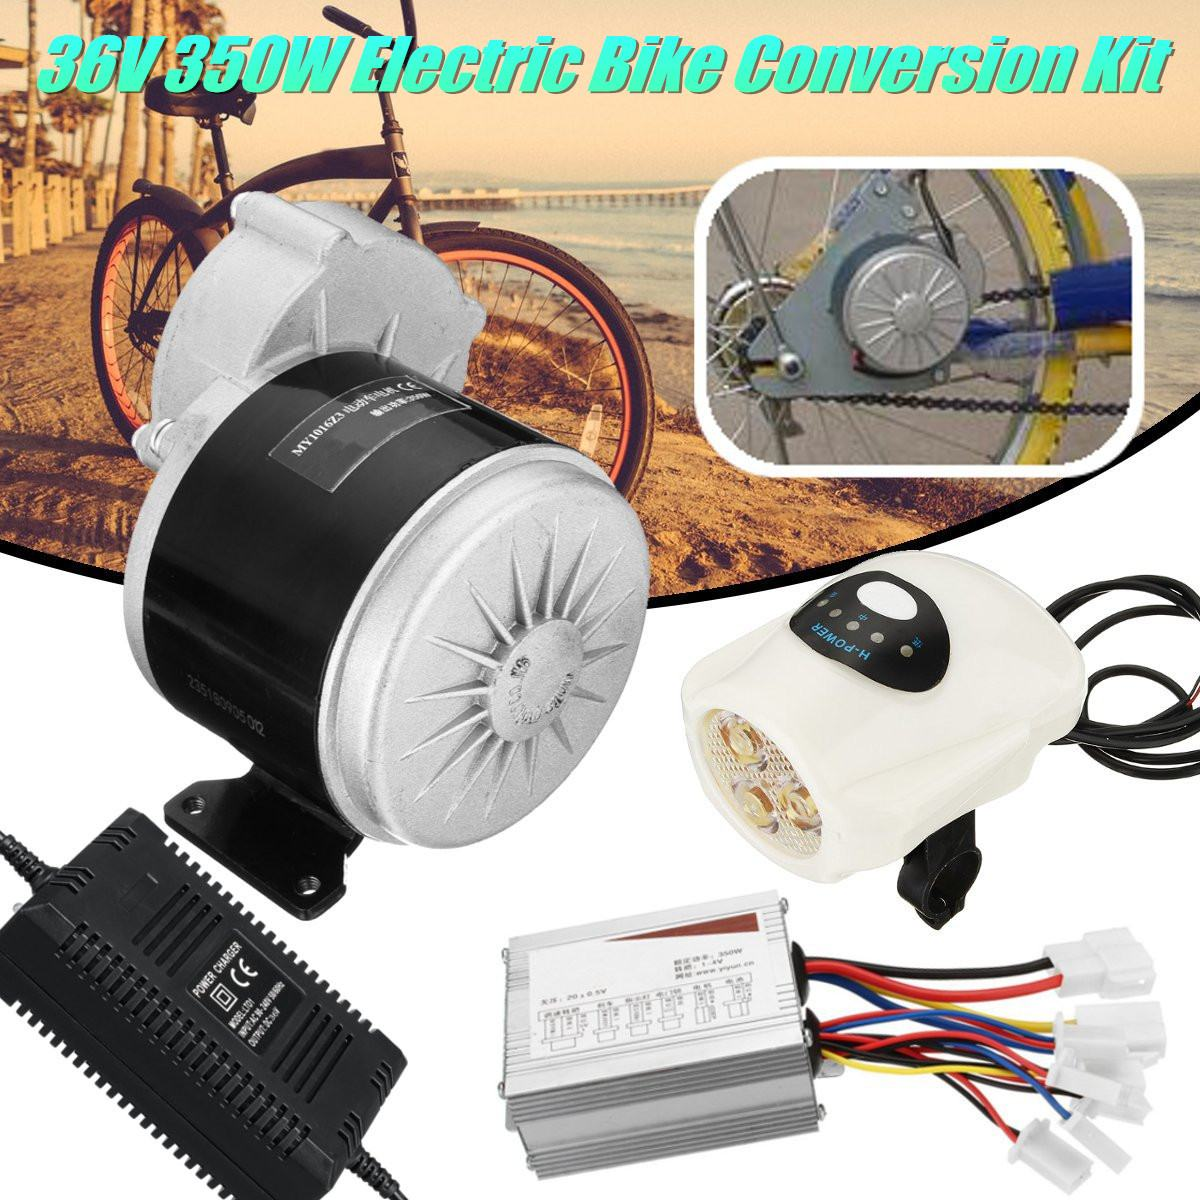 36V 350W Electric Bike Conversion Kit Controller For 24-28 Inch Ordinary Bicycle With Motor Speed Control Switch Etc New Arrival36V 350W Electric Bike Conversion Kit Controller For 24-28 Inch Ordinary Bicycle With Motor Speed Control Switch Etc New Arrival